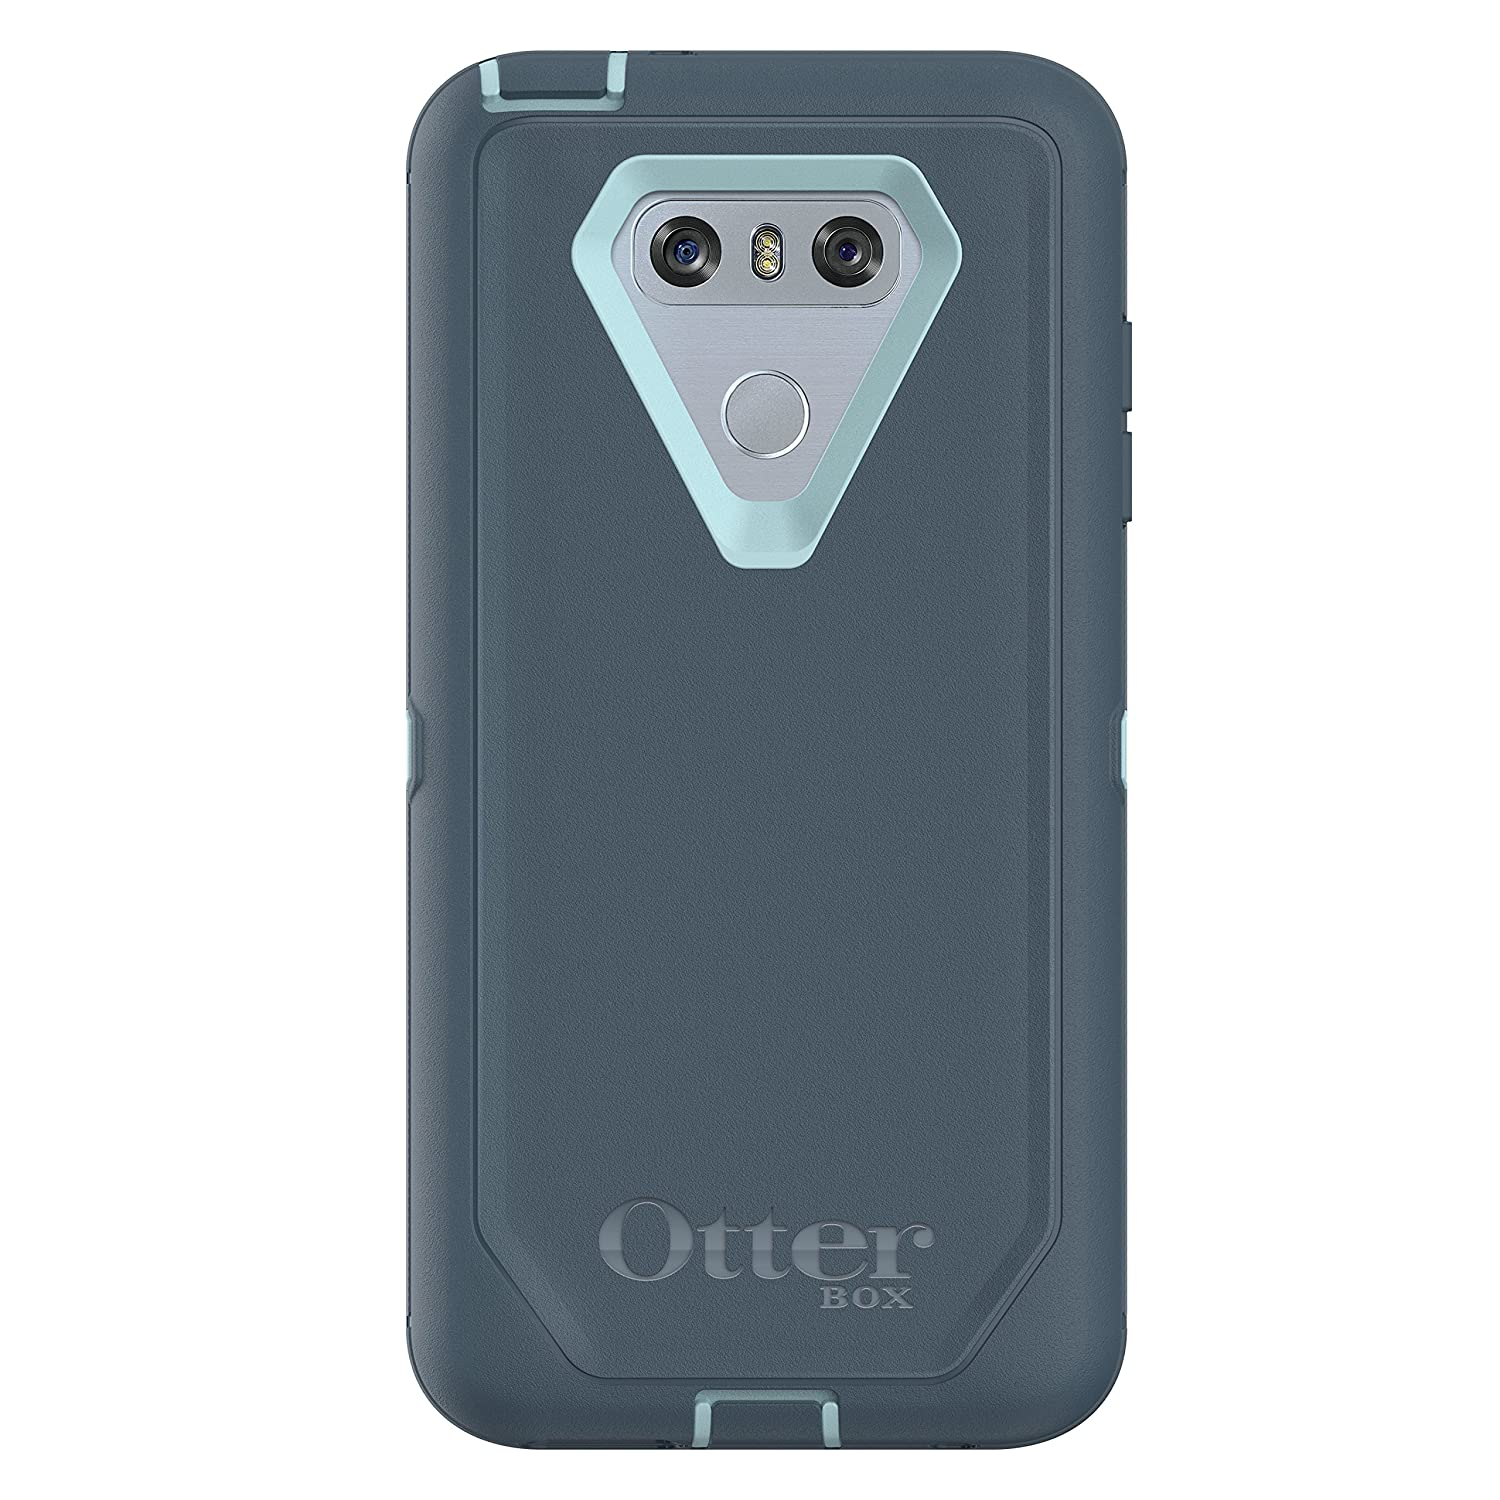 big sale ac7fc 4d92a OtterBox DEFENDER SERIES Case for LG G6 - Retail Packaging - MOON RIVER  (BAHAMA BLUE/TEMPEST BLUE)